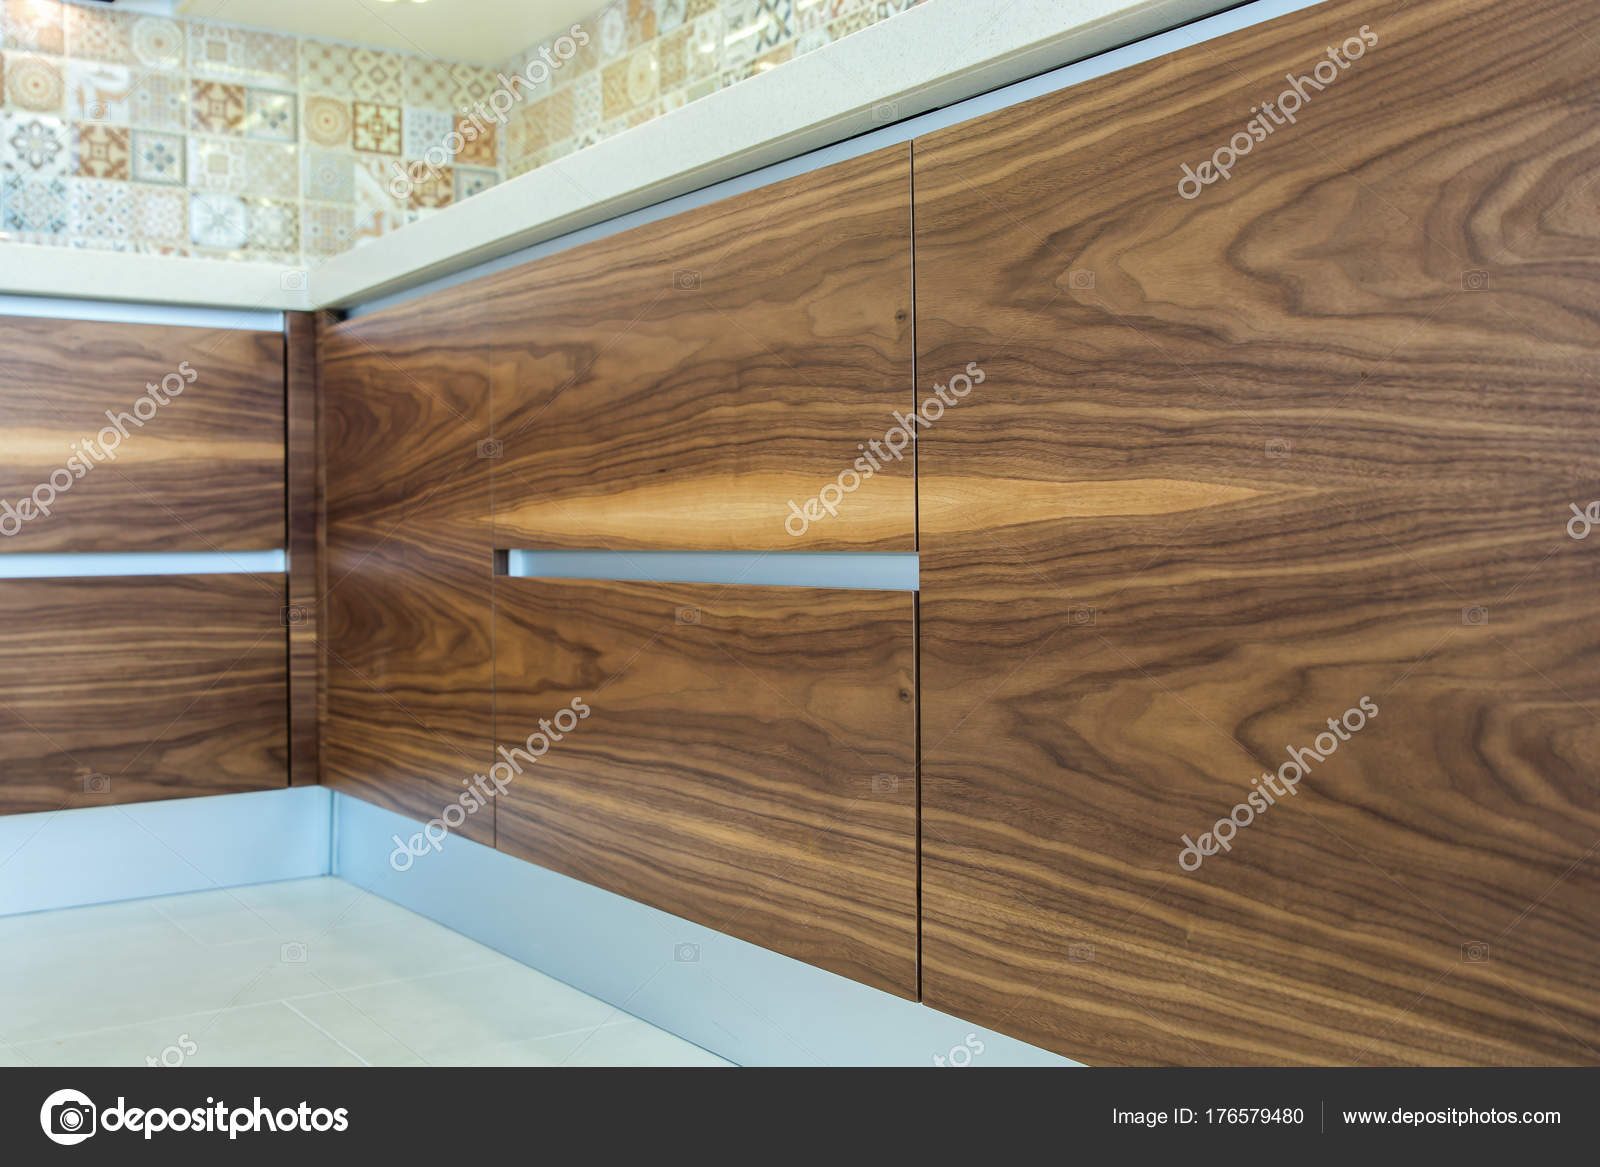 Modern home interior wood texture wooden surface of the kitchen facades are made from walnut veneer european furniture design technologies